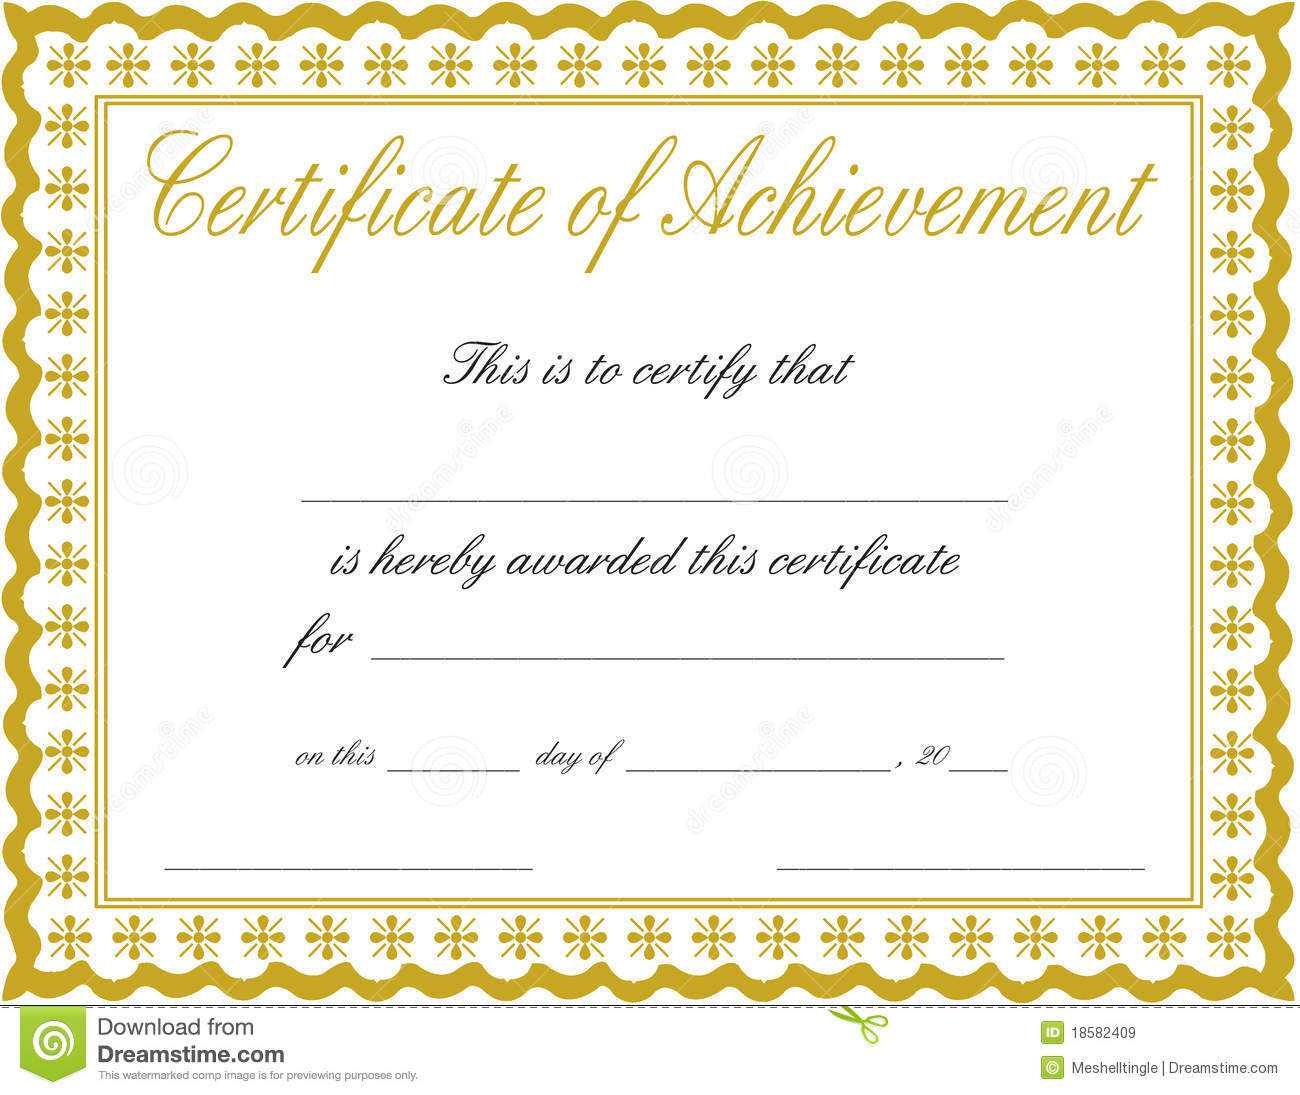 Certificate Of Accomplishment Template In Certificate Of Accomplishment Template Free